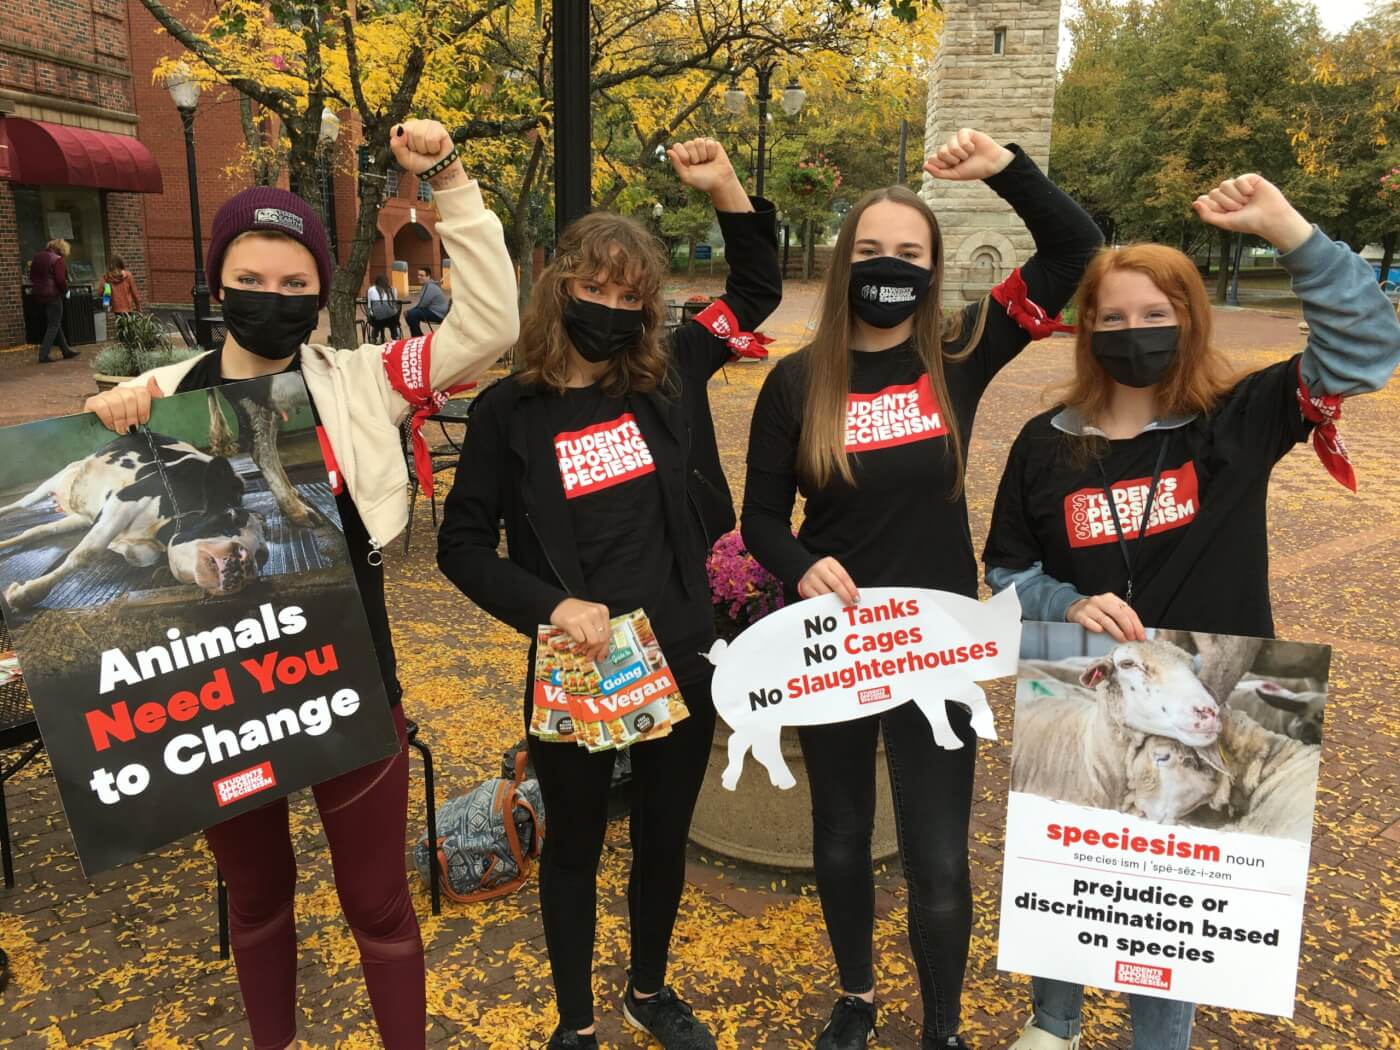 Student protesting speciesism with Students Opposing Speciesism